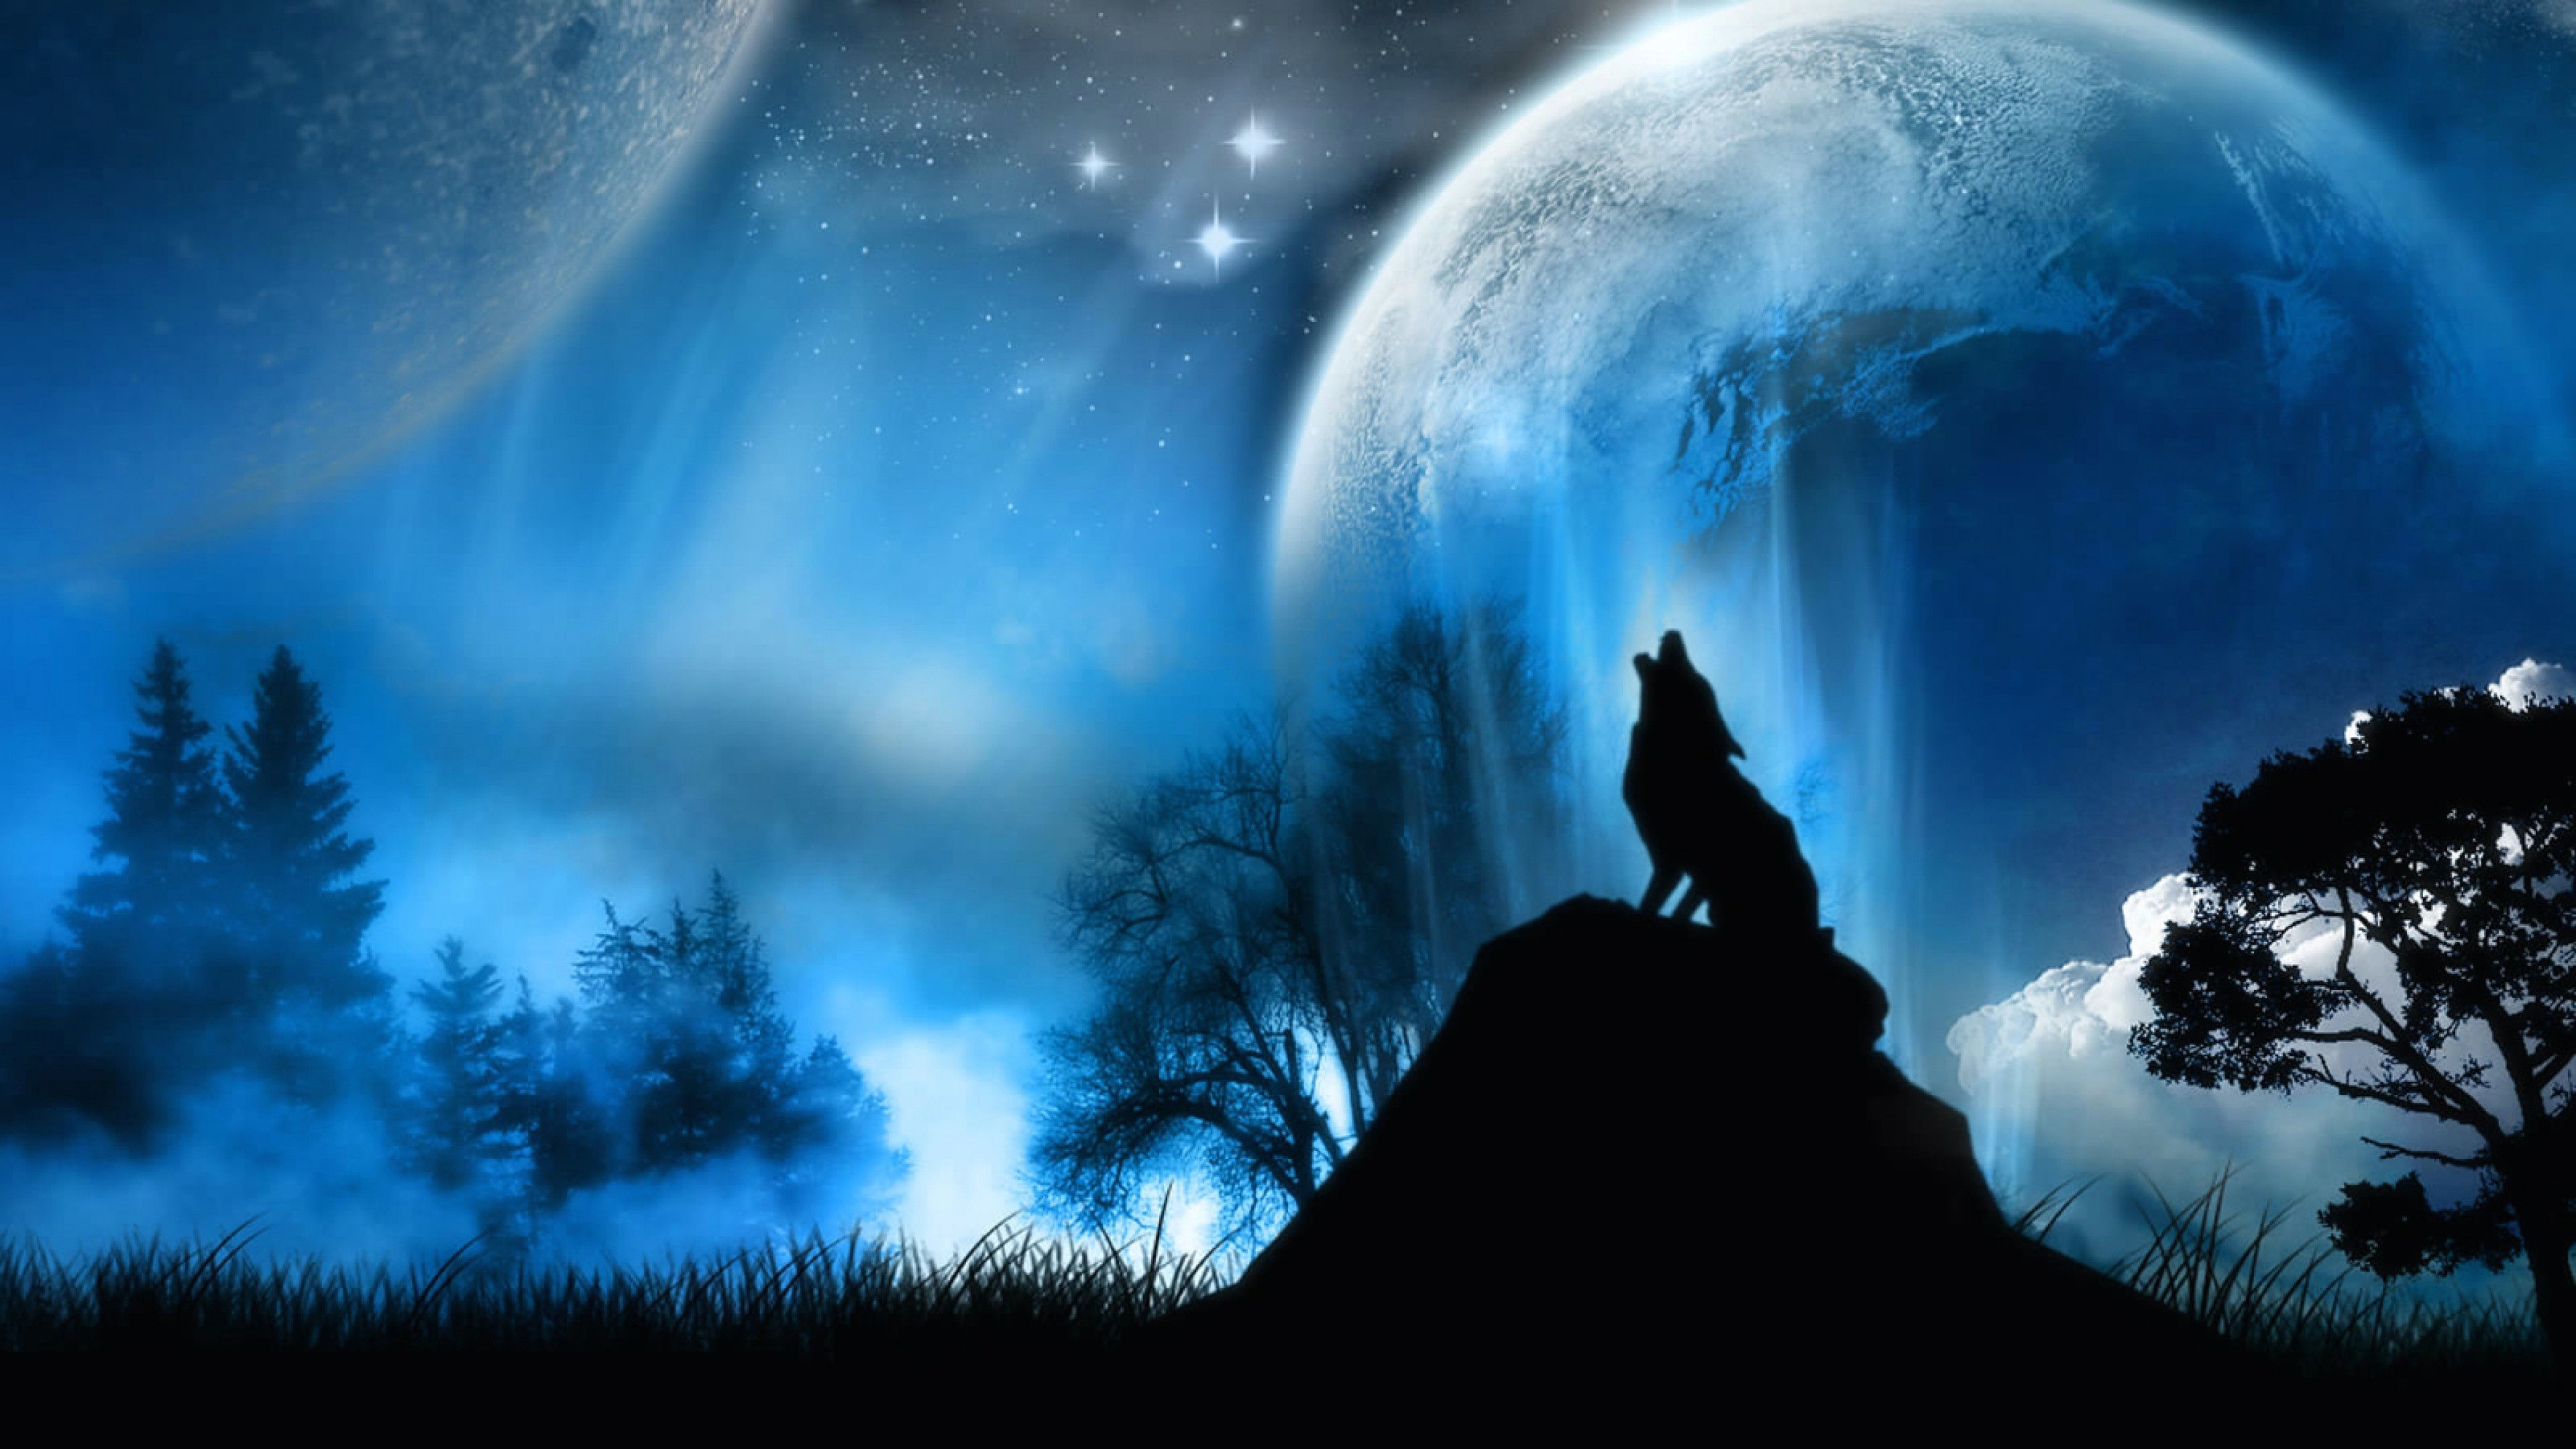 3840x2160 wallpaper moonlight wolf fantasy 3840x2160